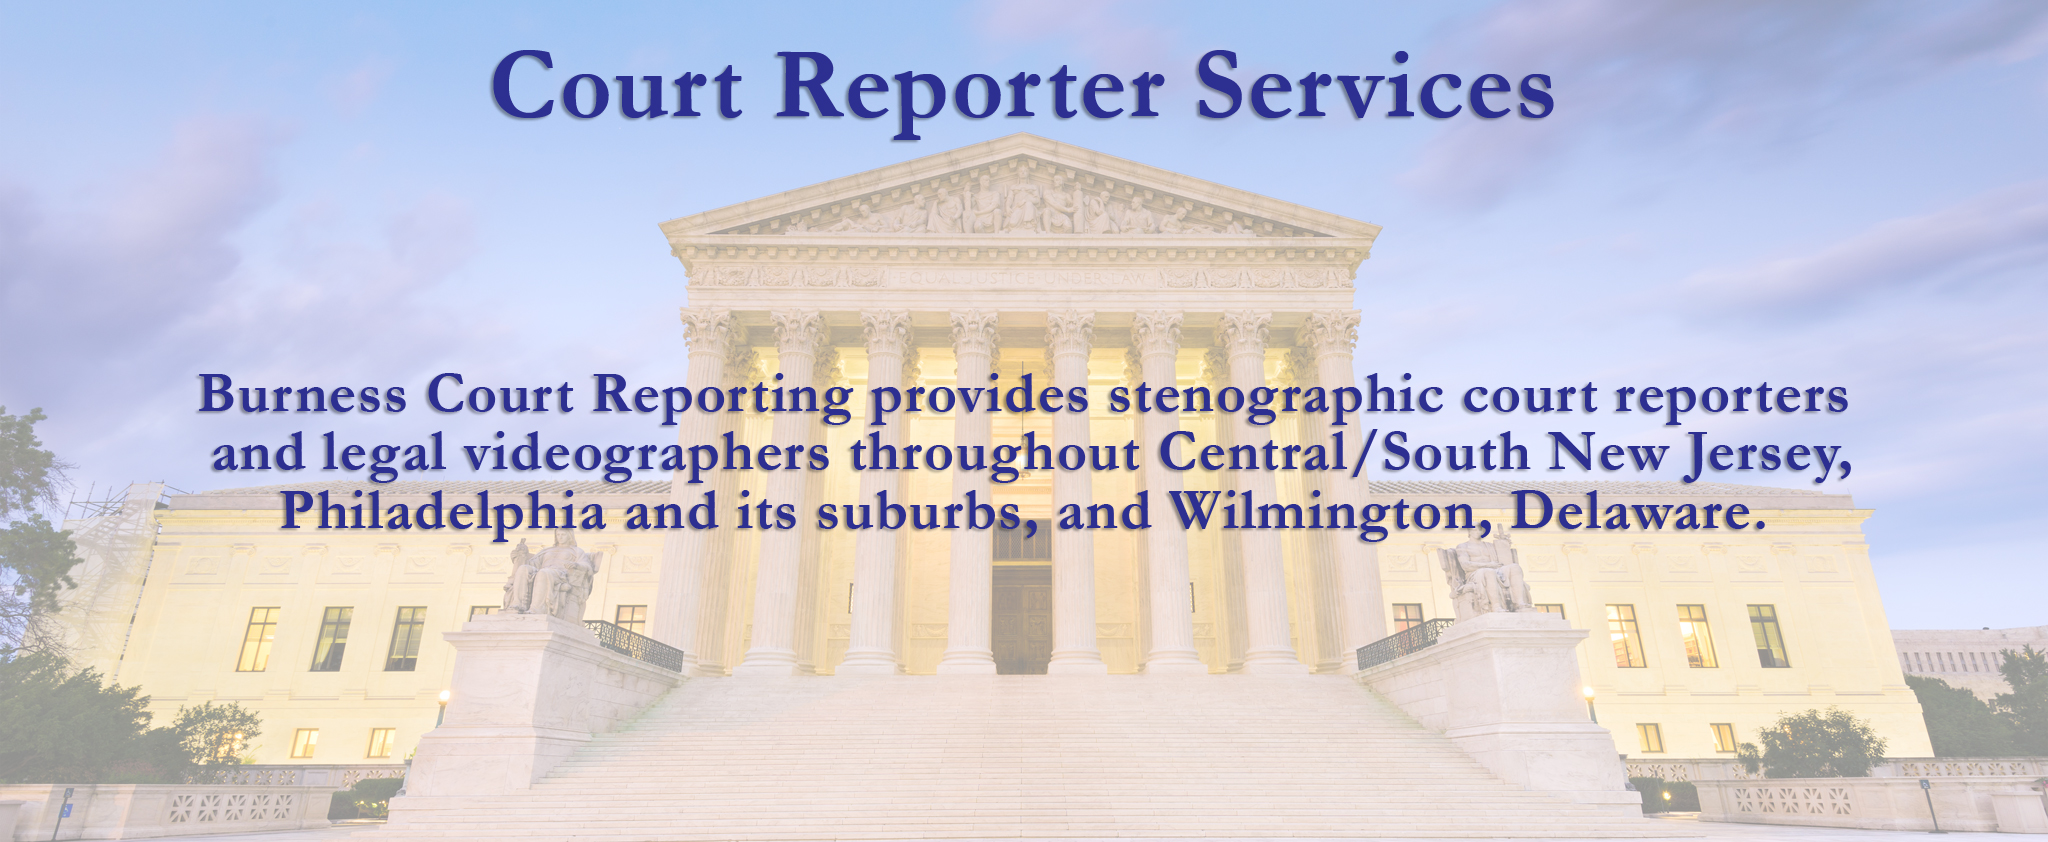 Court reporter services